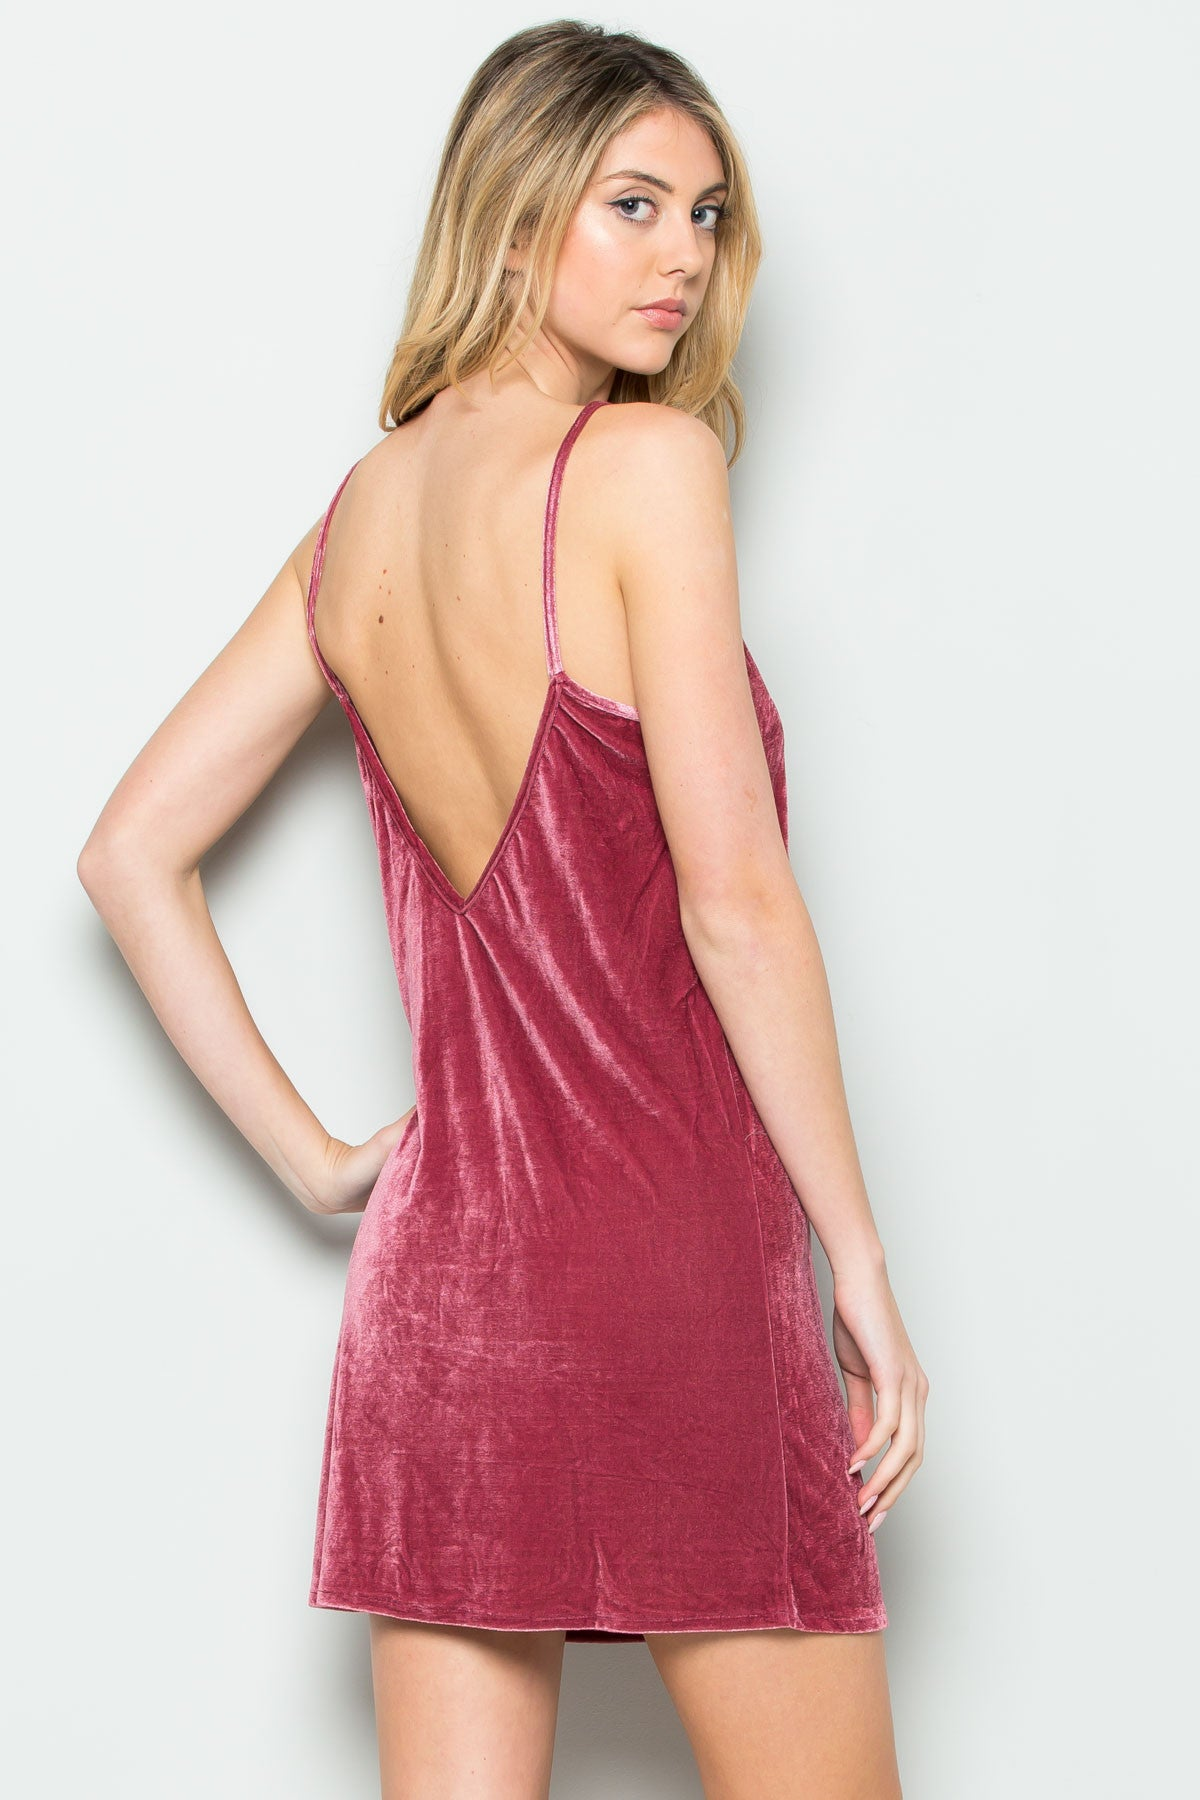 Open Back Crush Velvet Cami Slip Dress in Black - Dresses - My Yuccie - 5